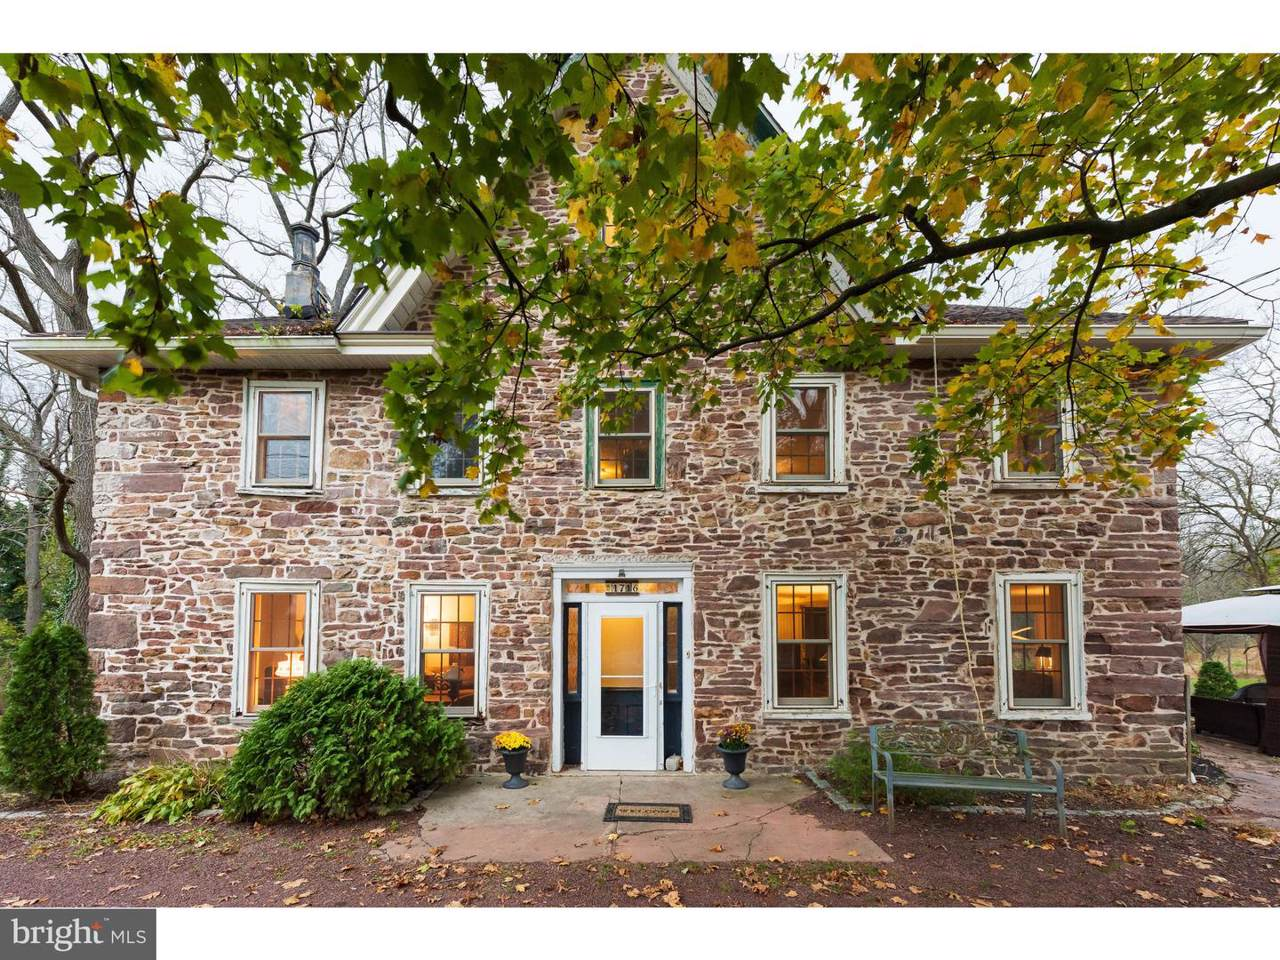 1716 Valley Forge - Photo 1